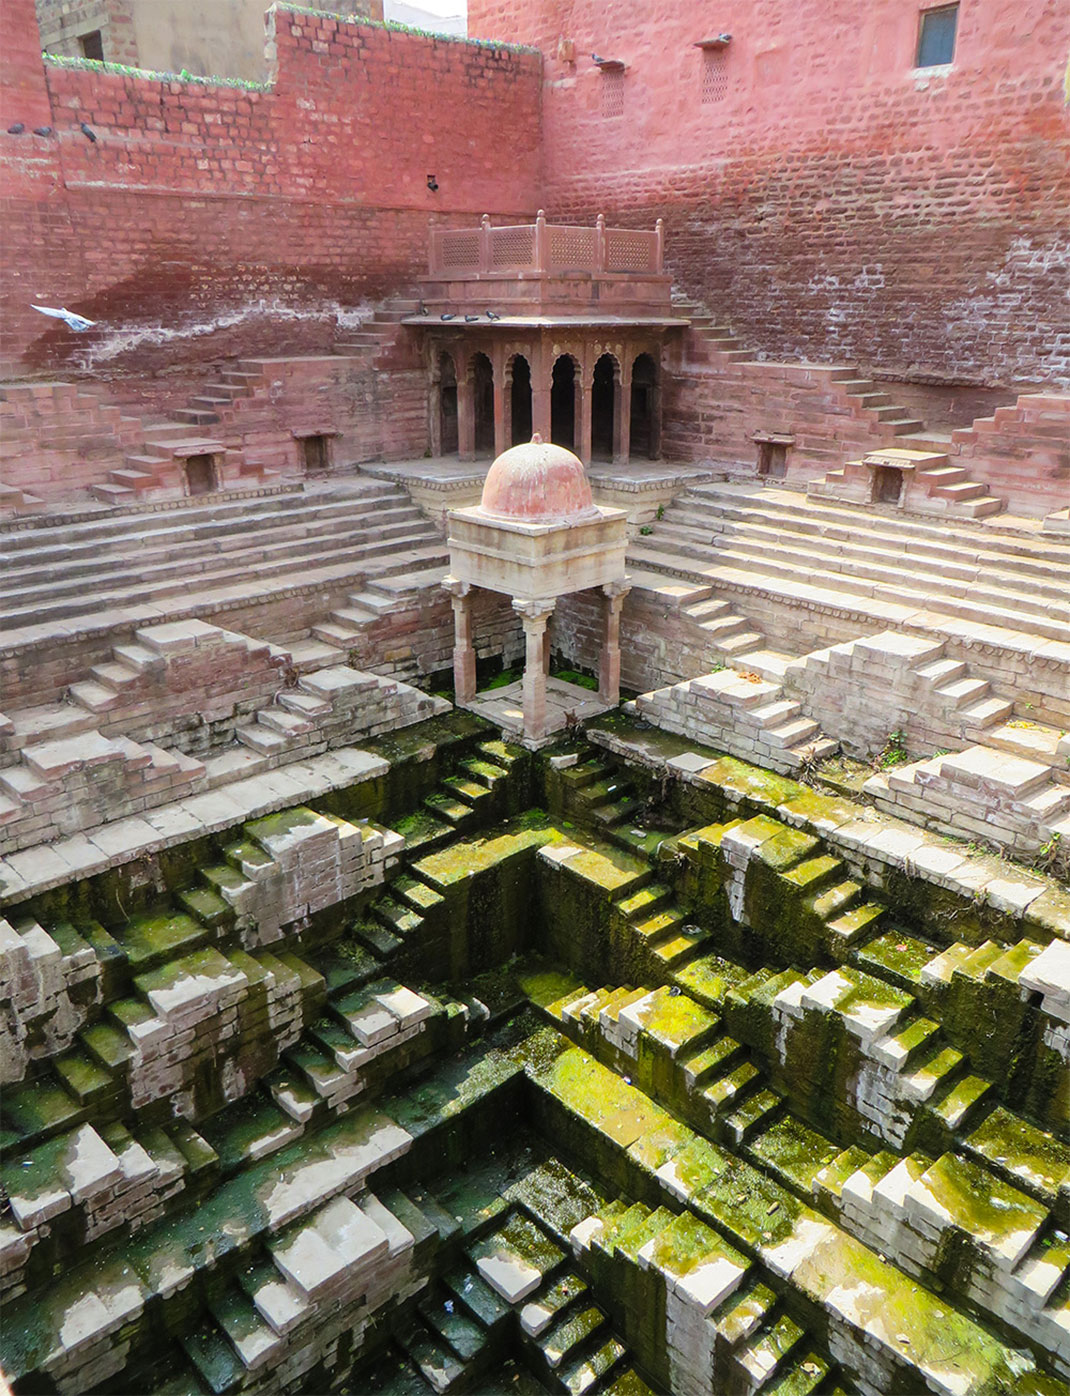 Admire These 2000 Year Old Somptous Buildings In India Destined To Disappear-4